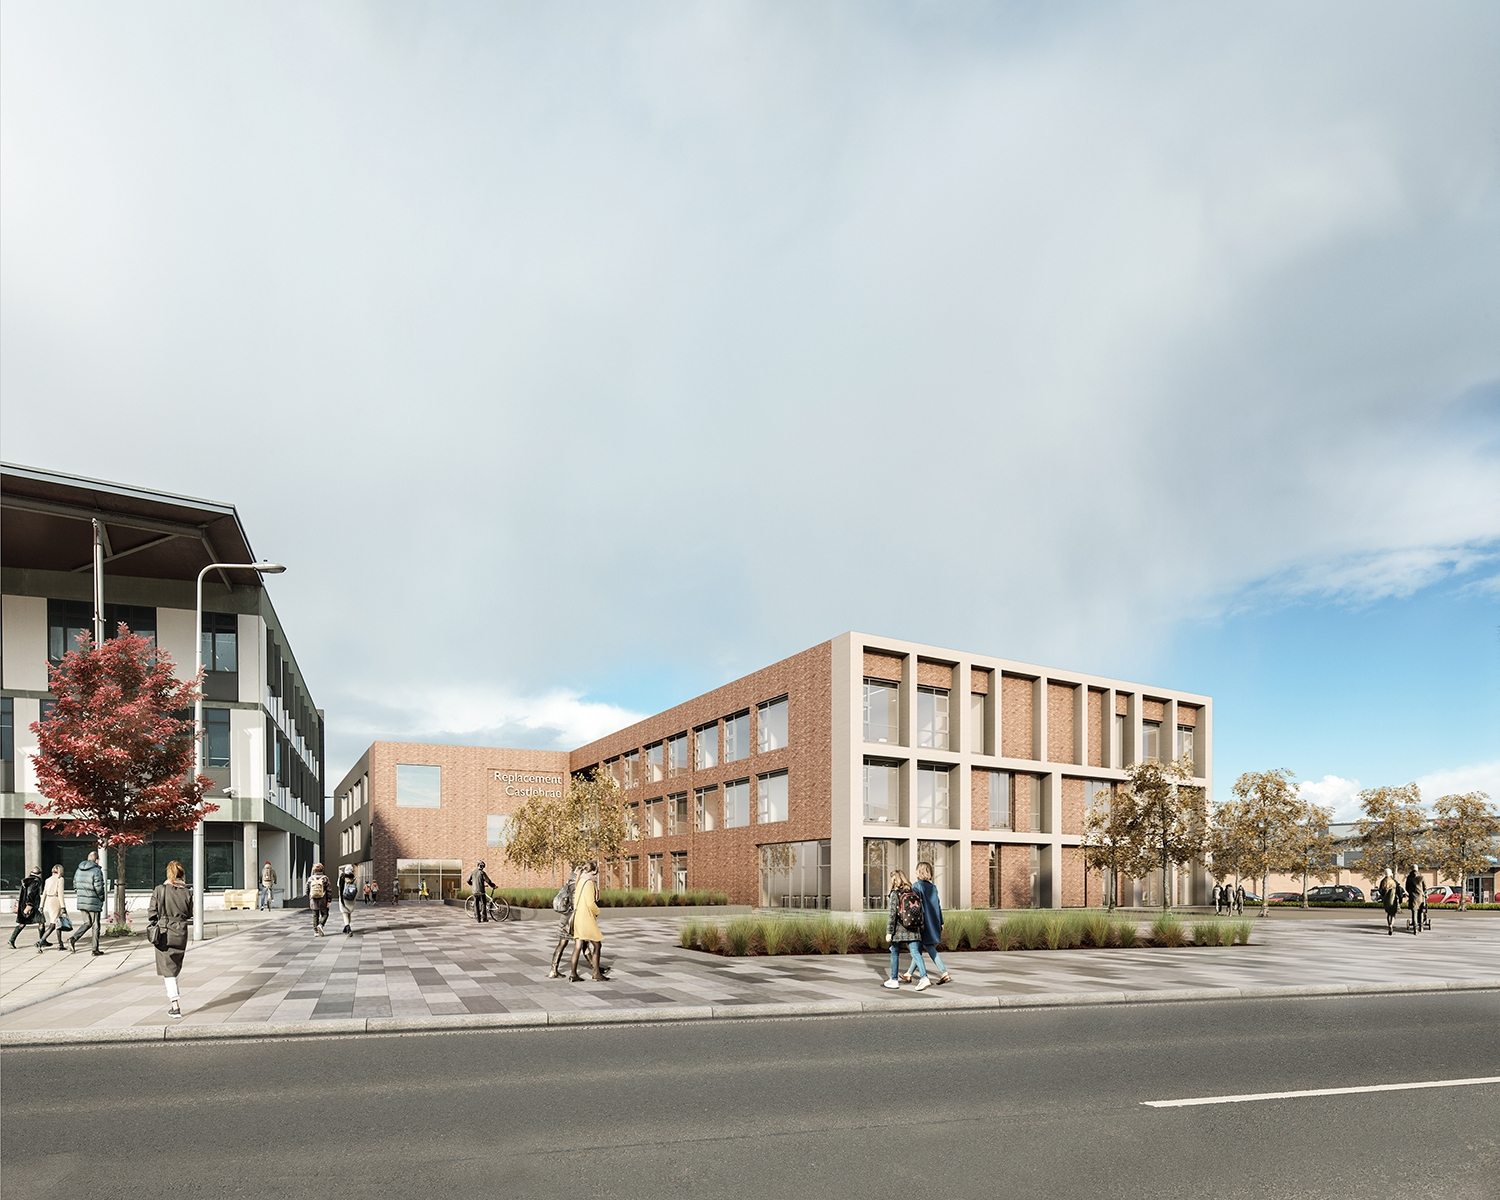 the exterior concept for the new school